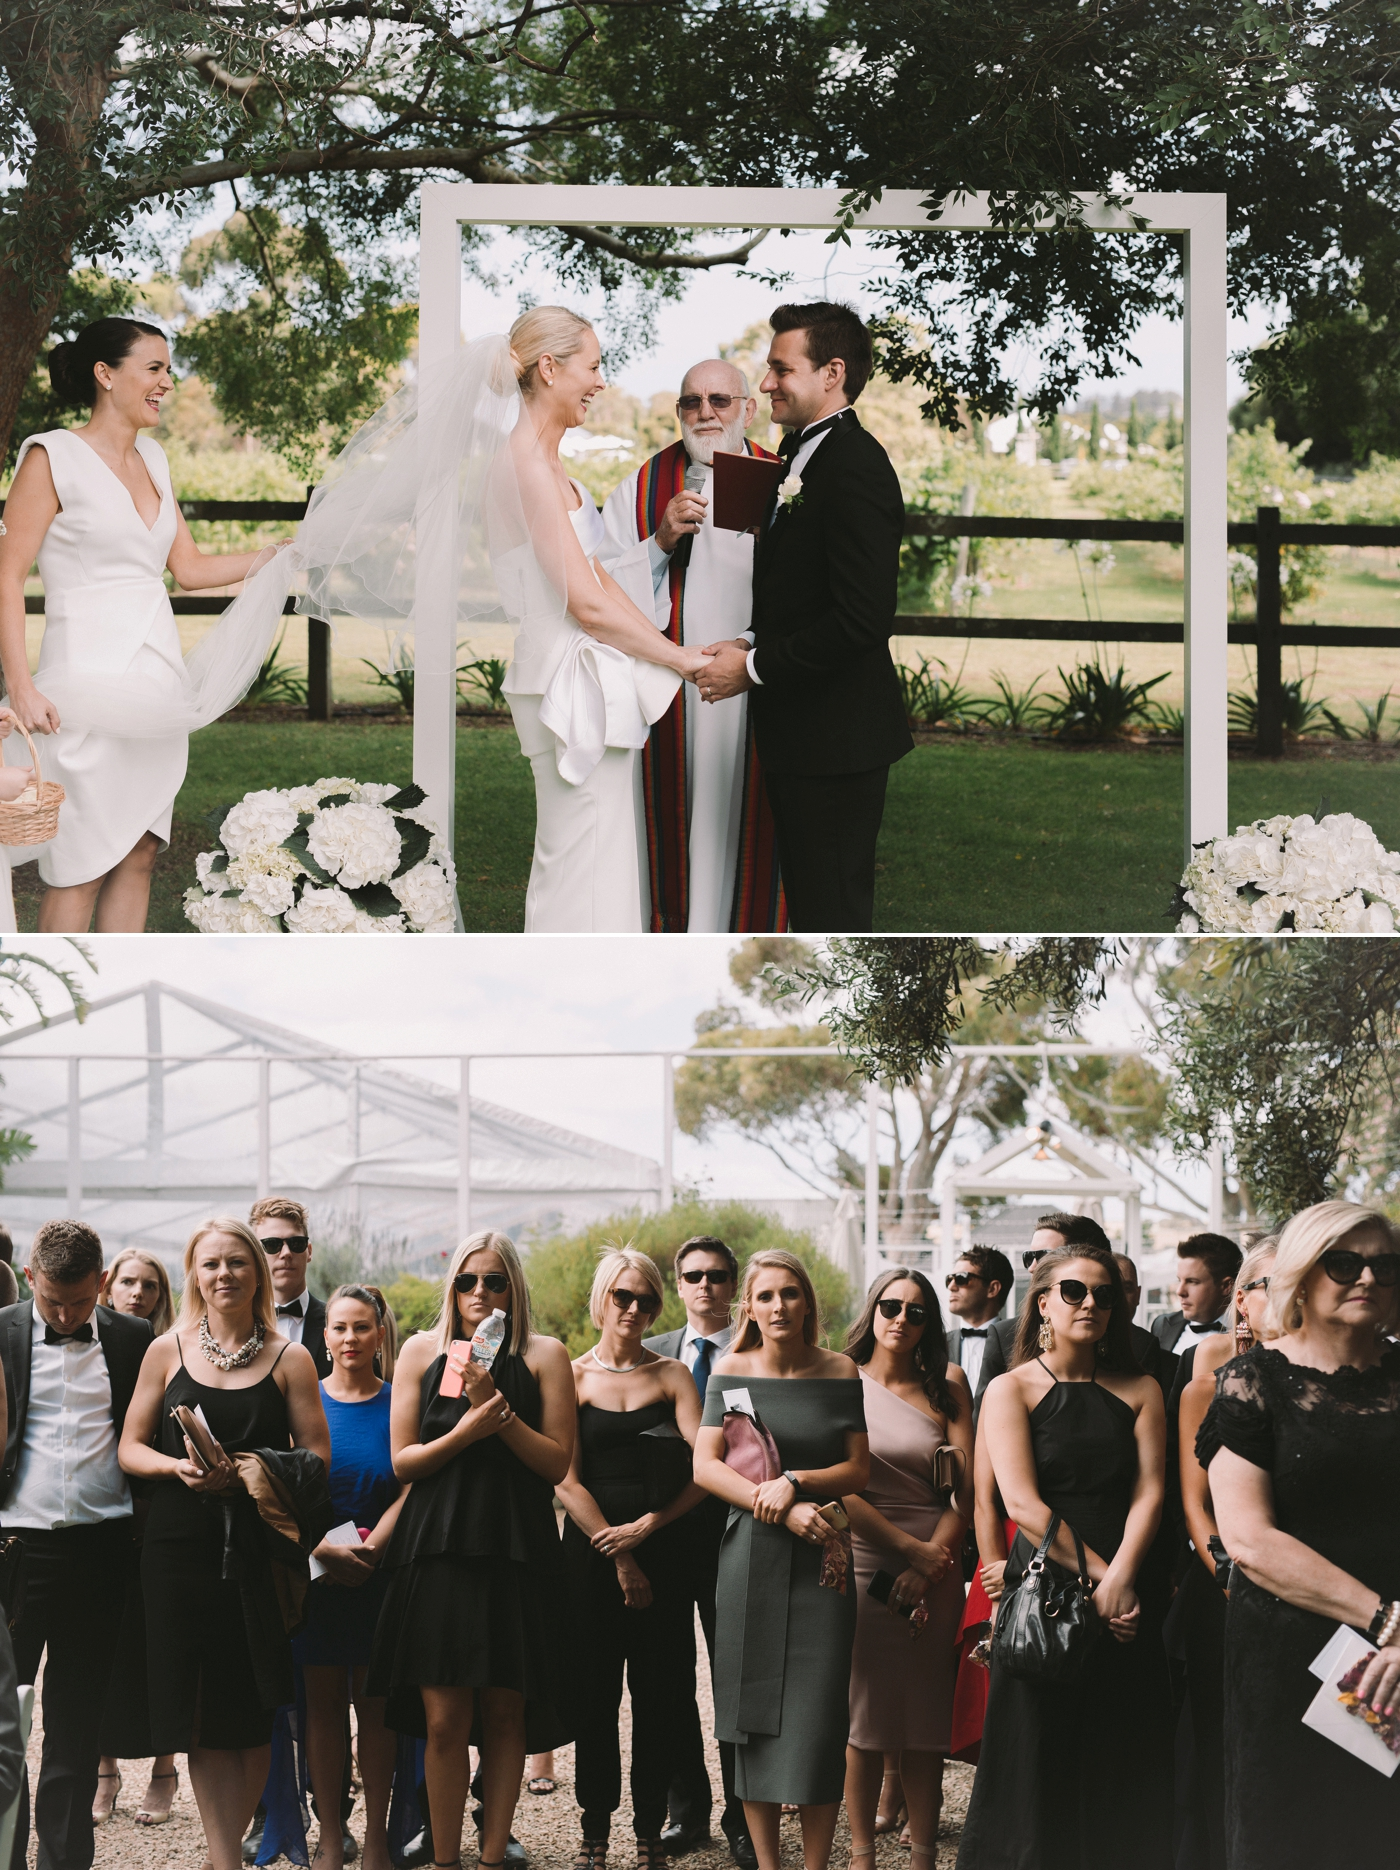 Bec and Brad - Waverley Estate Wedding - Natural wedding photographer in Adelaide